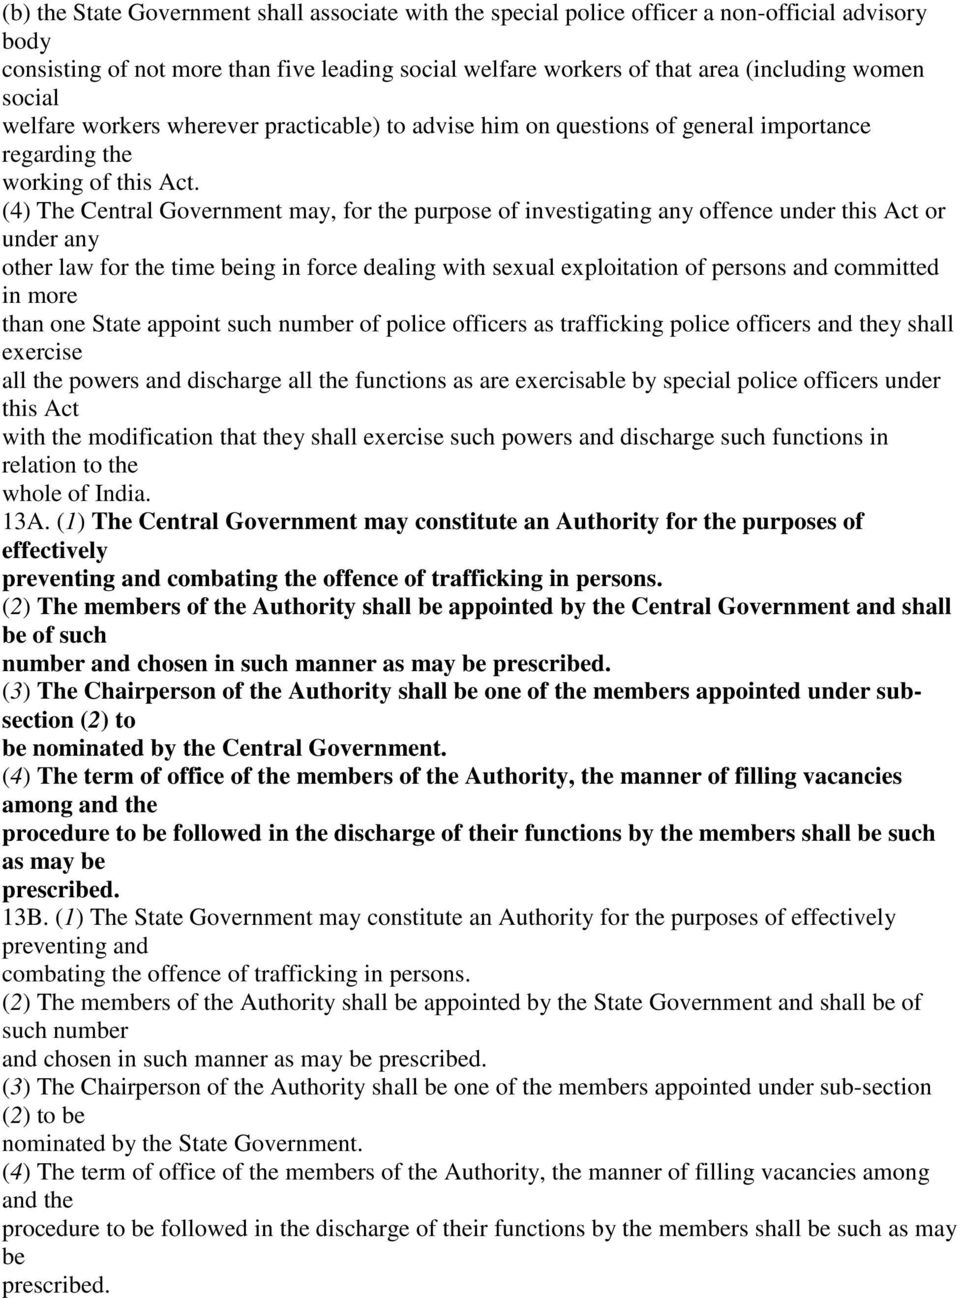 (4) The Central Government may, for the purpose of investigating any offence under this Act or under any other law for the time being in force dealing with sexual exploitation of persons and